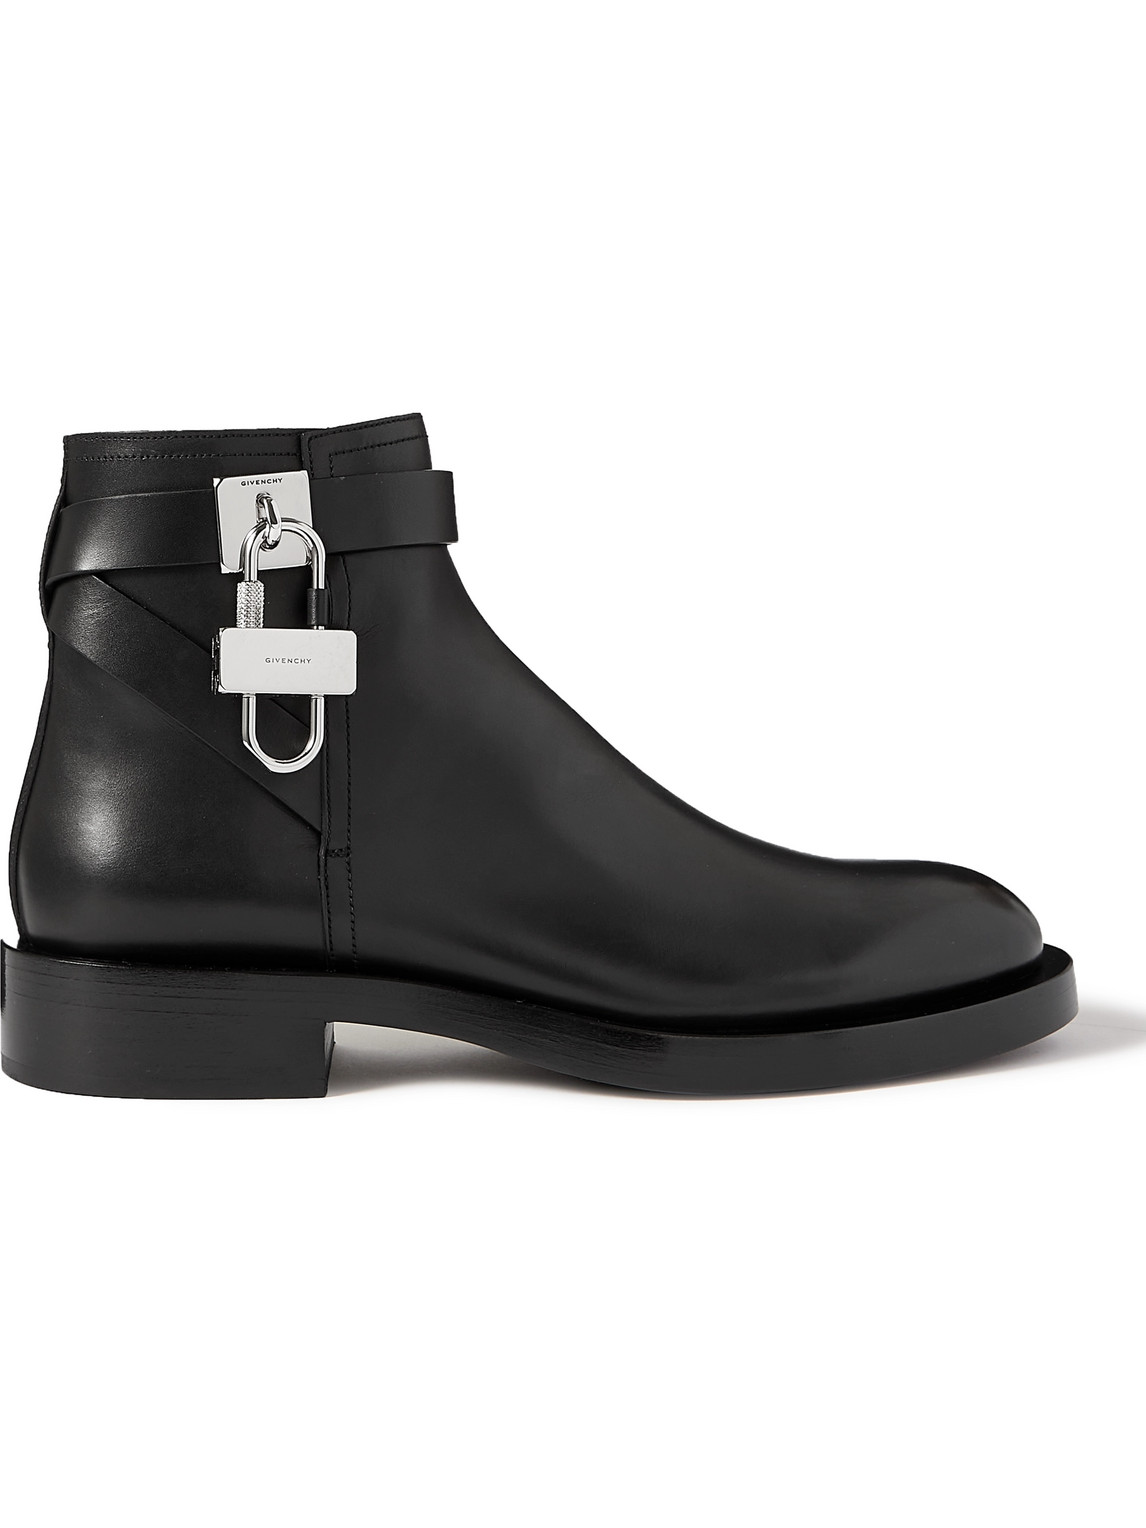 Givenchy Boots EMBELLISHED CROC-EFFECT LEATHER CHELSEA BOOTS